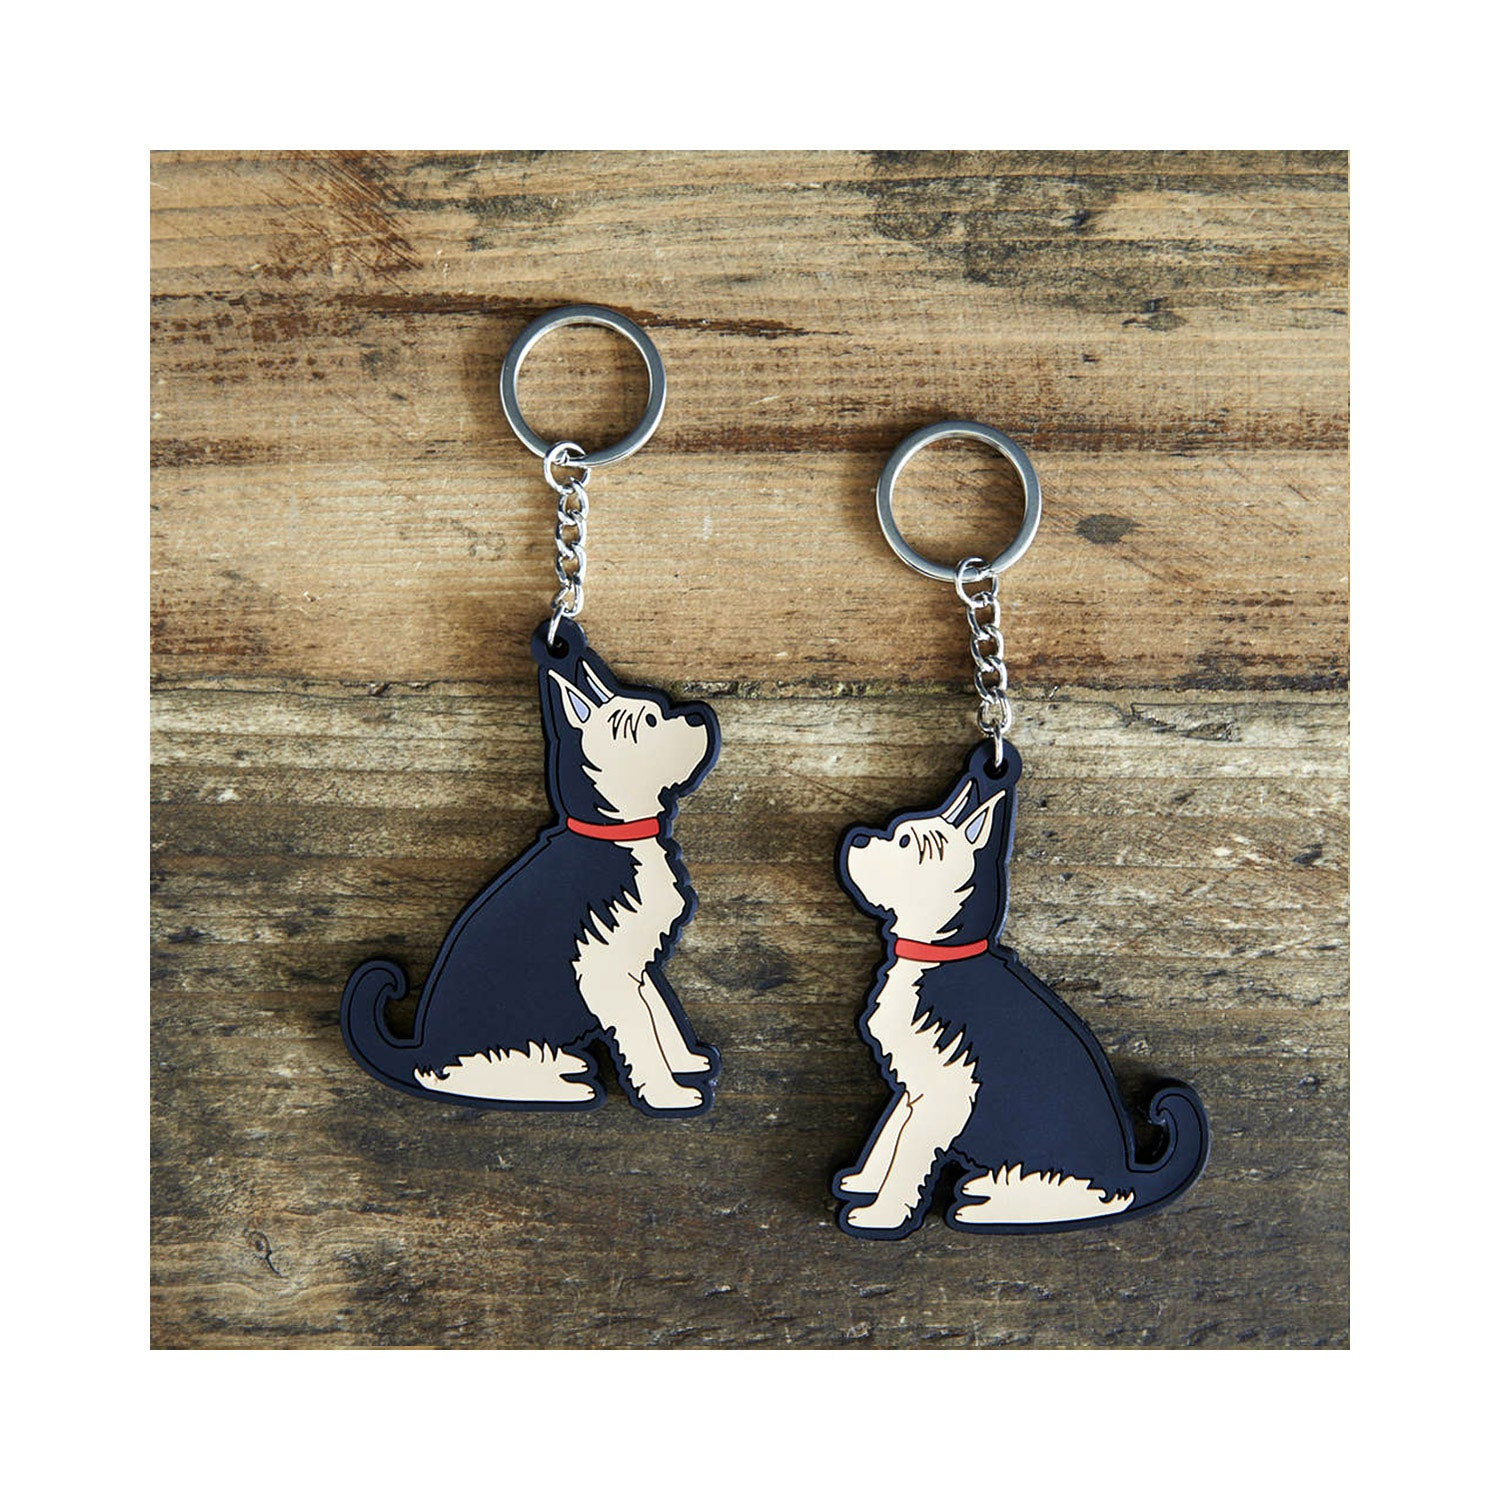 Dog Lover Gifts available at Dog Krazy Gifts - Ella The Yorkshire Terrier Keyring- part of the Sweet William range available from Dog Krazy Gifts